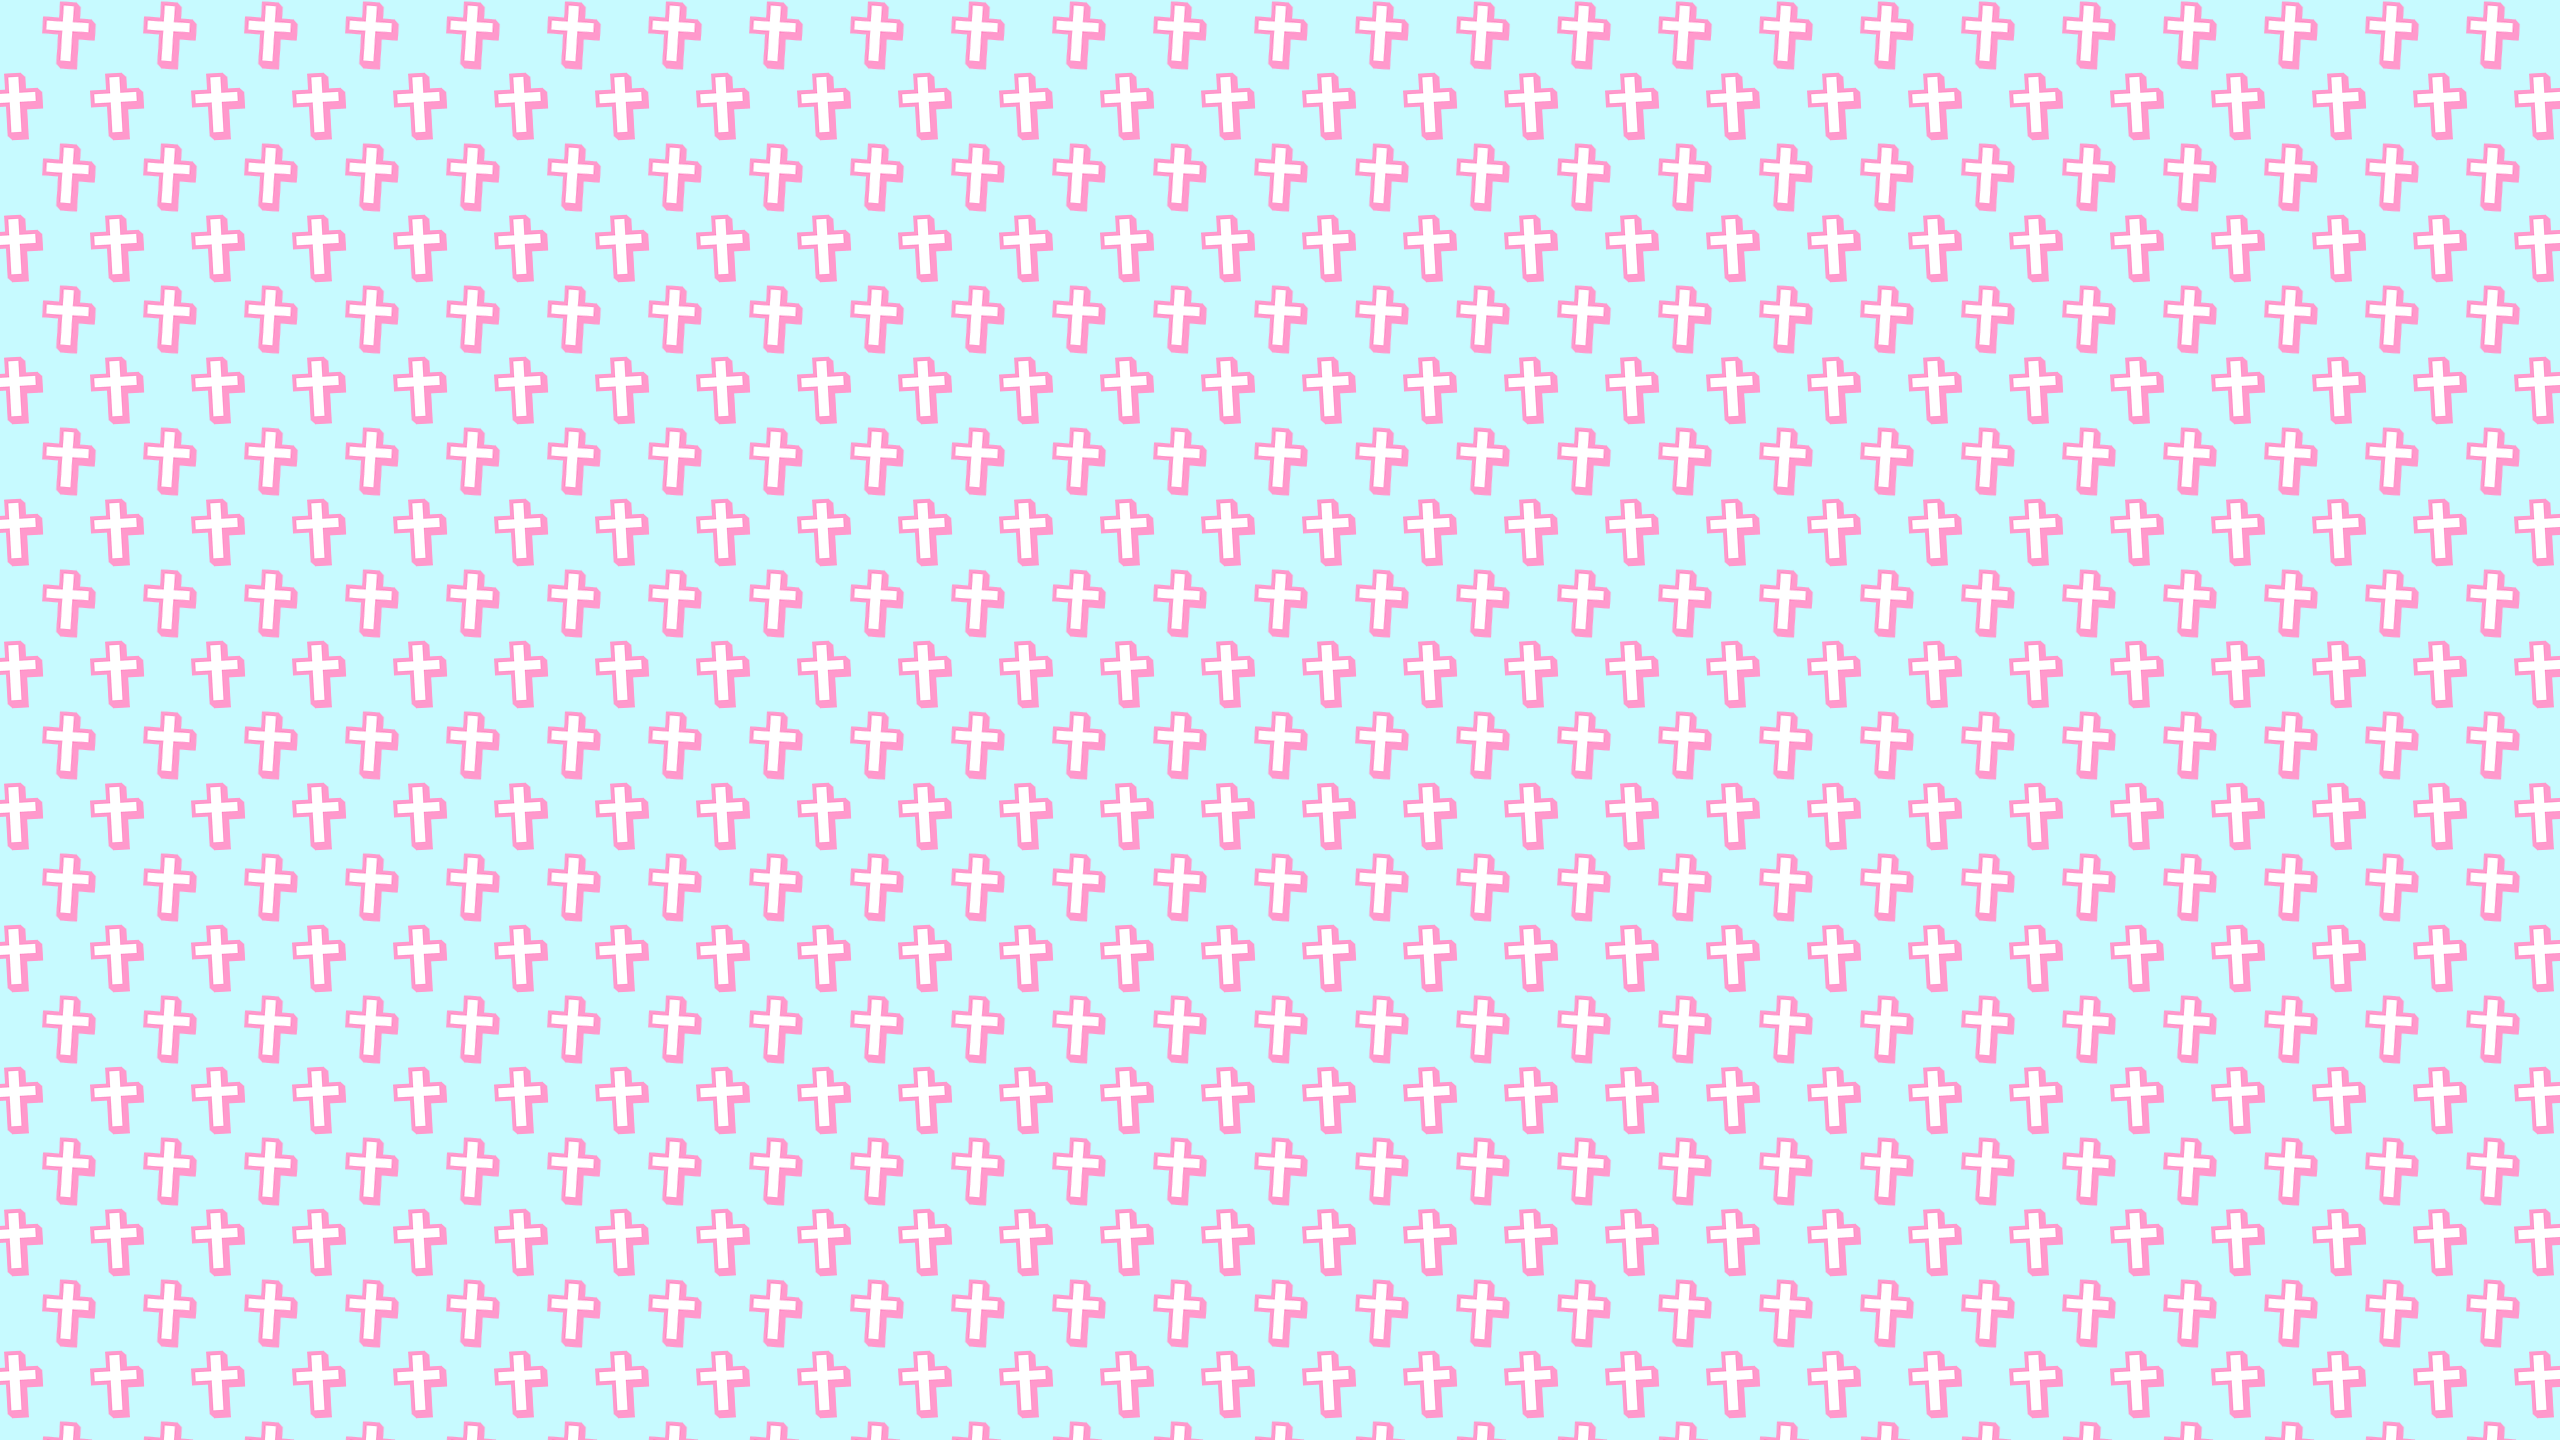 Image for tumblr triangle wallpaper Images HD  FASHION